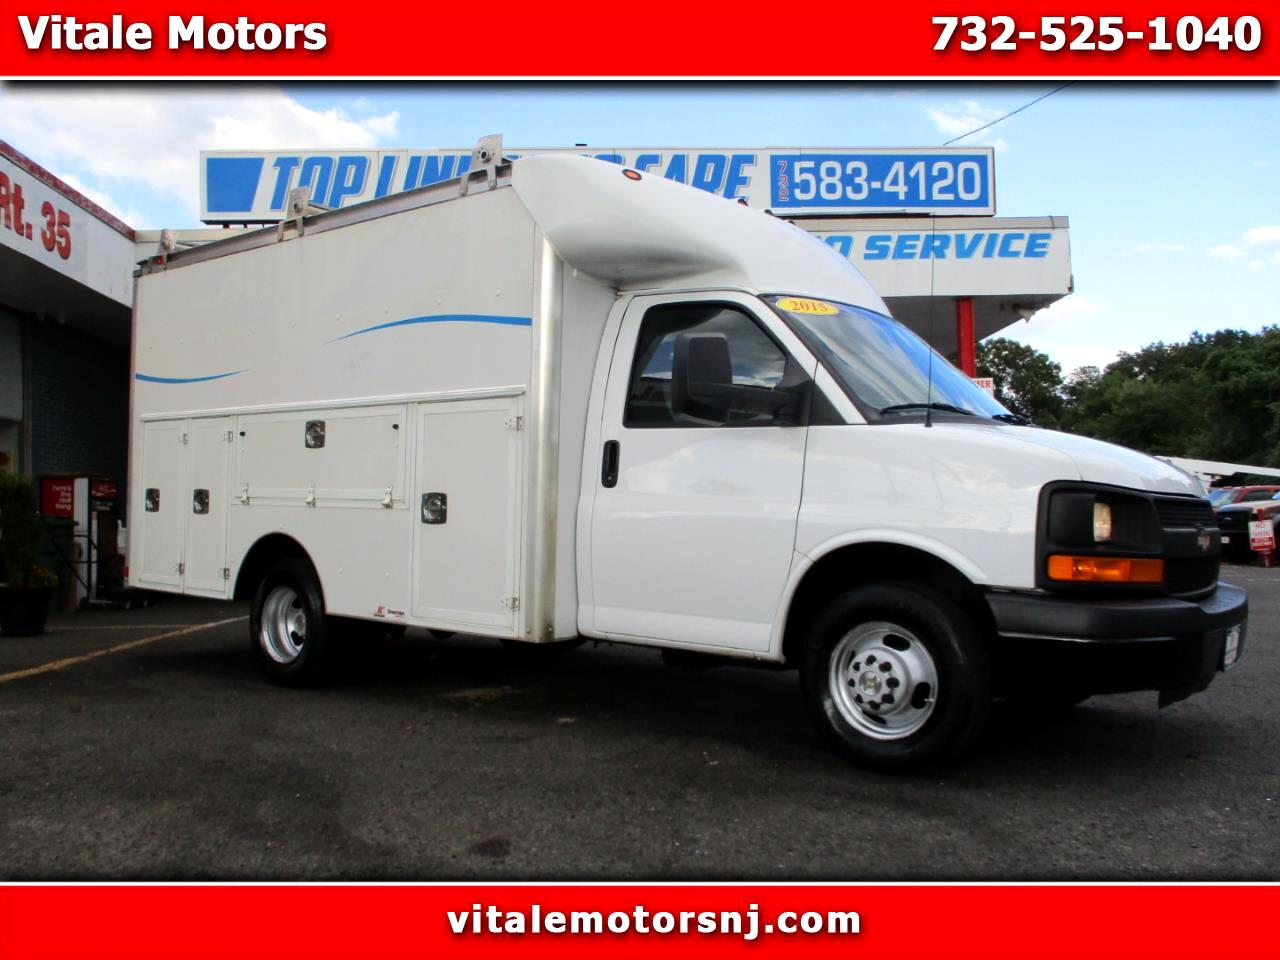 "2015 Chevrolet Express G3500 139""WB UTILITY BOX TRUCK 12 FOOT SUPREME BOX"